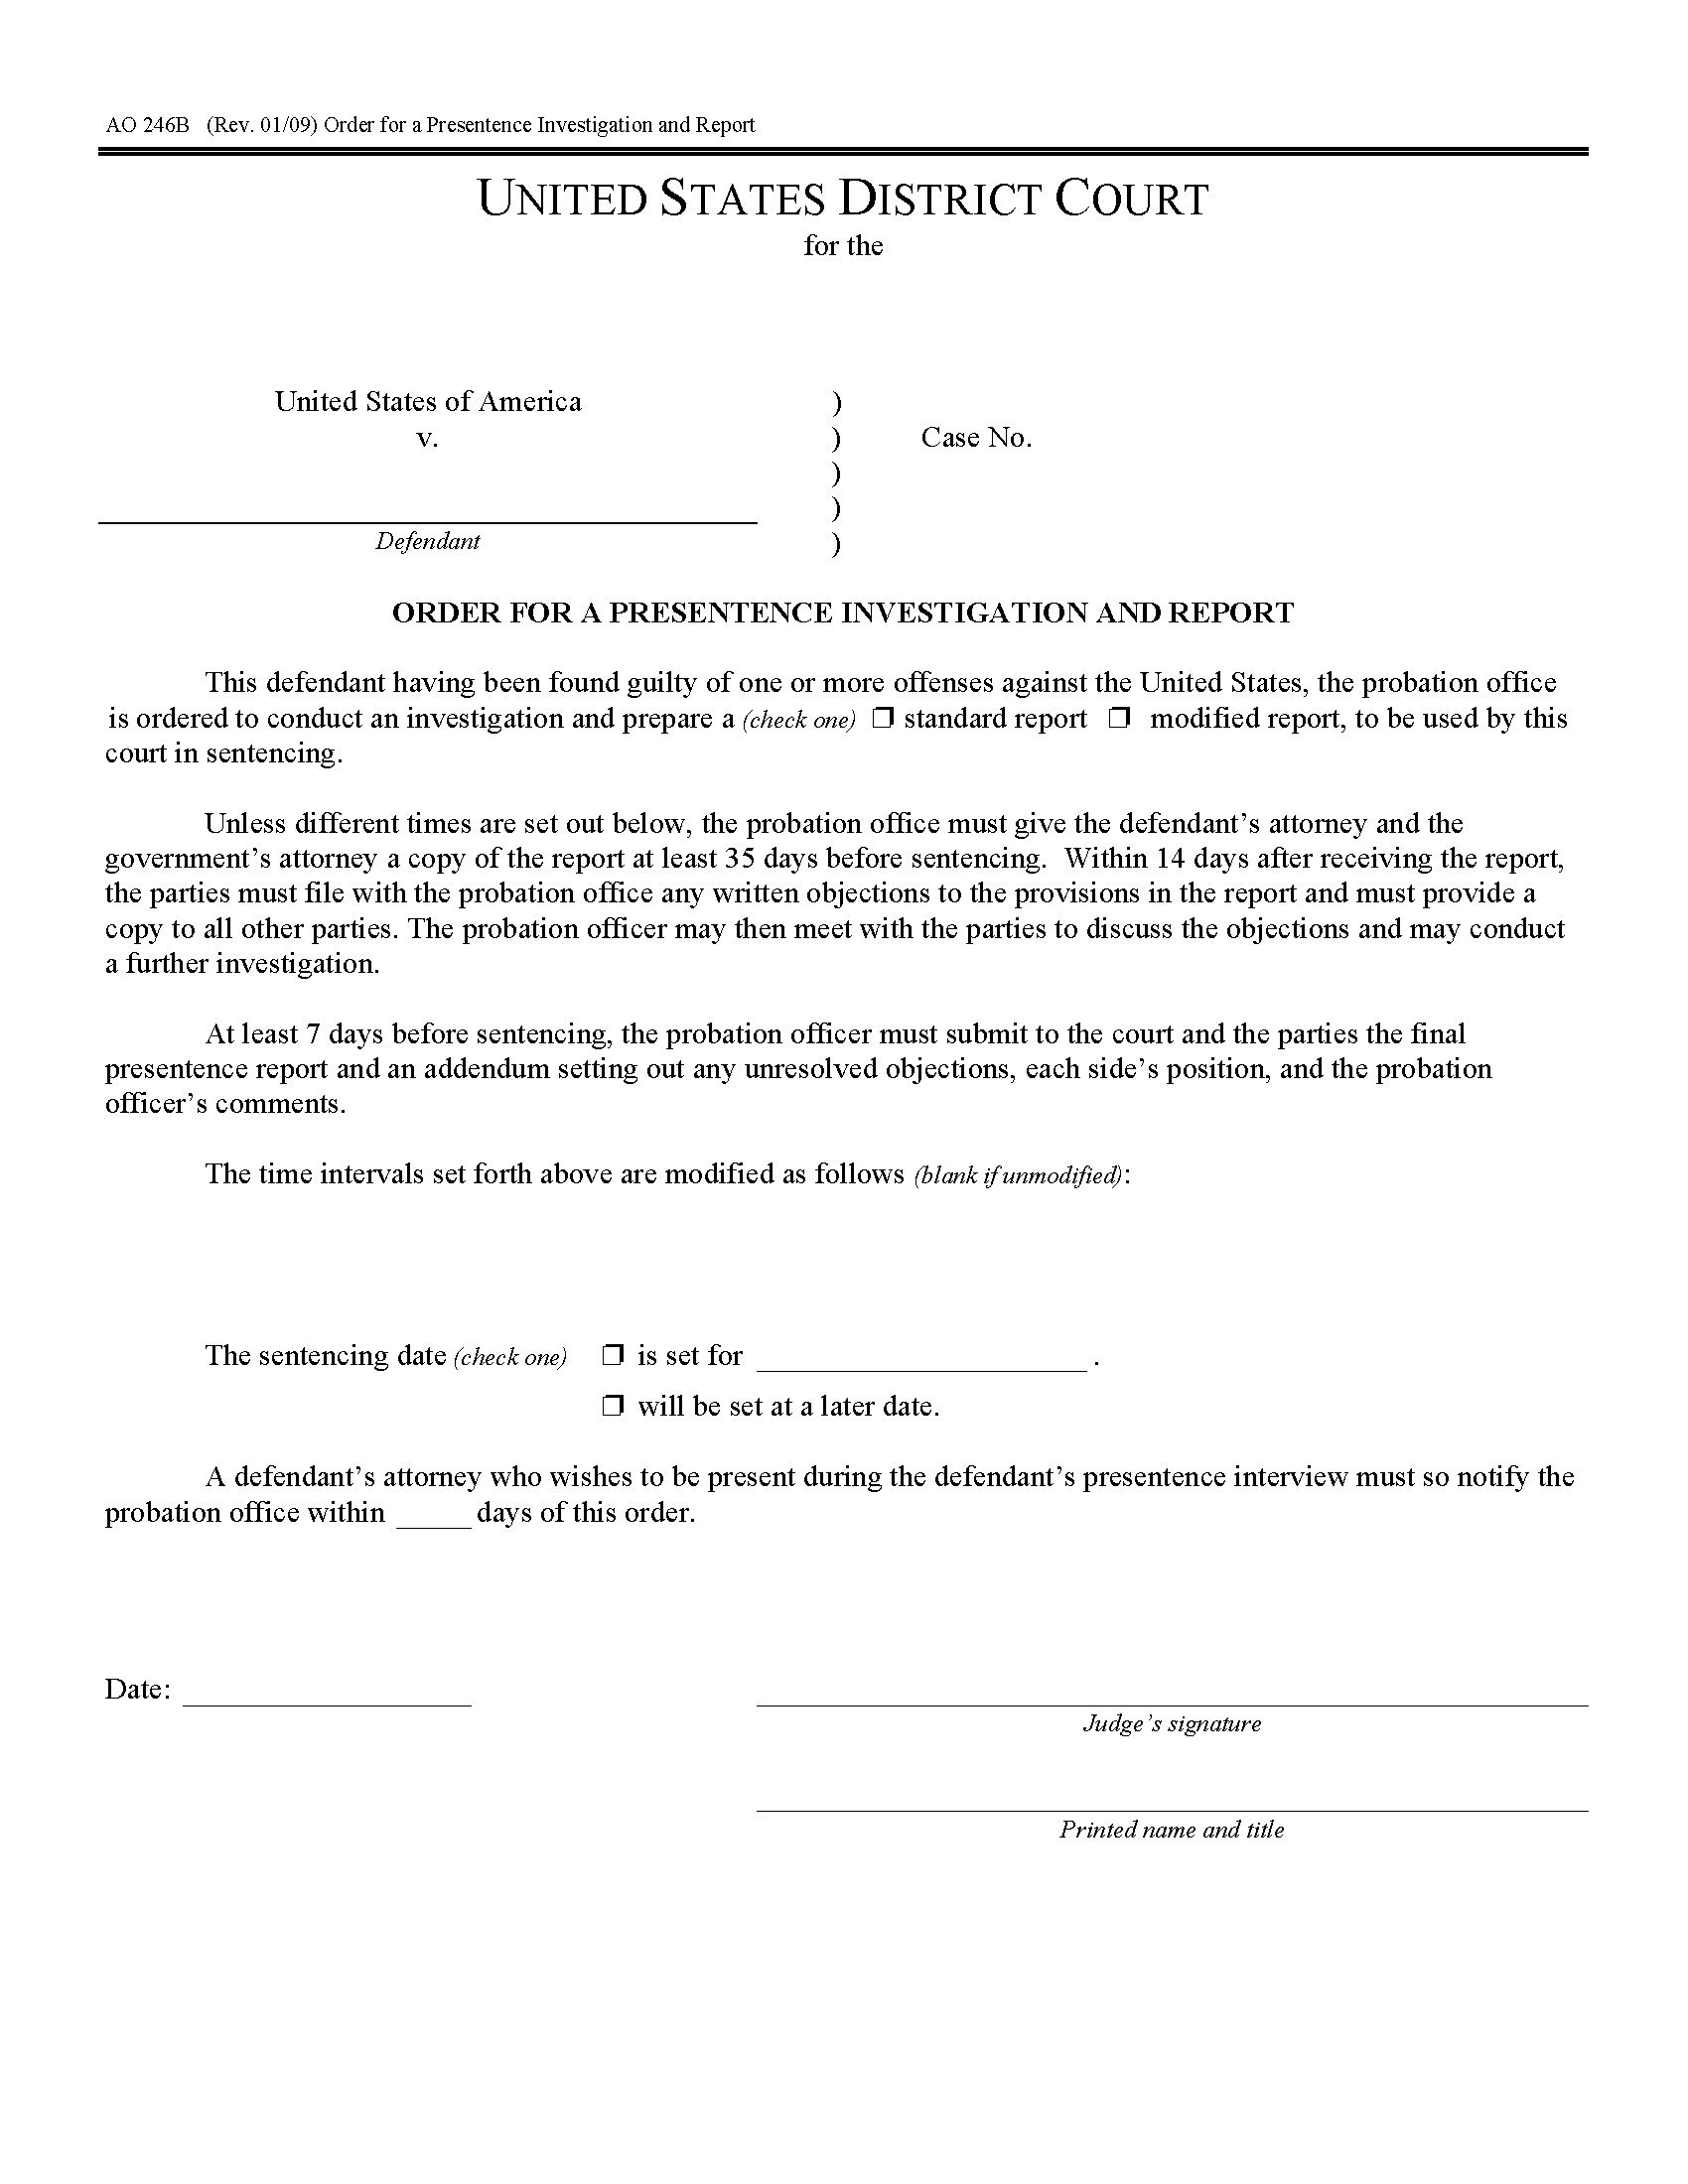 Usa Order For Presentence Investigation And Report Form Aob With Presentence Investigation Report Template